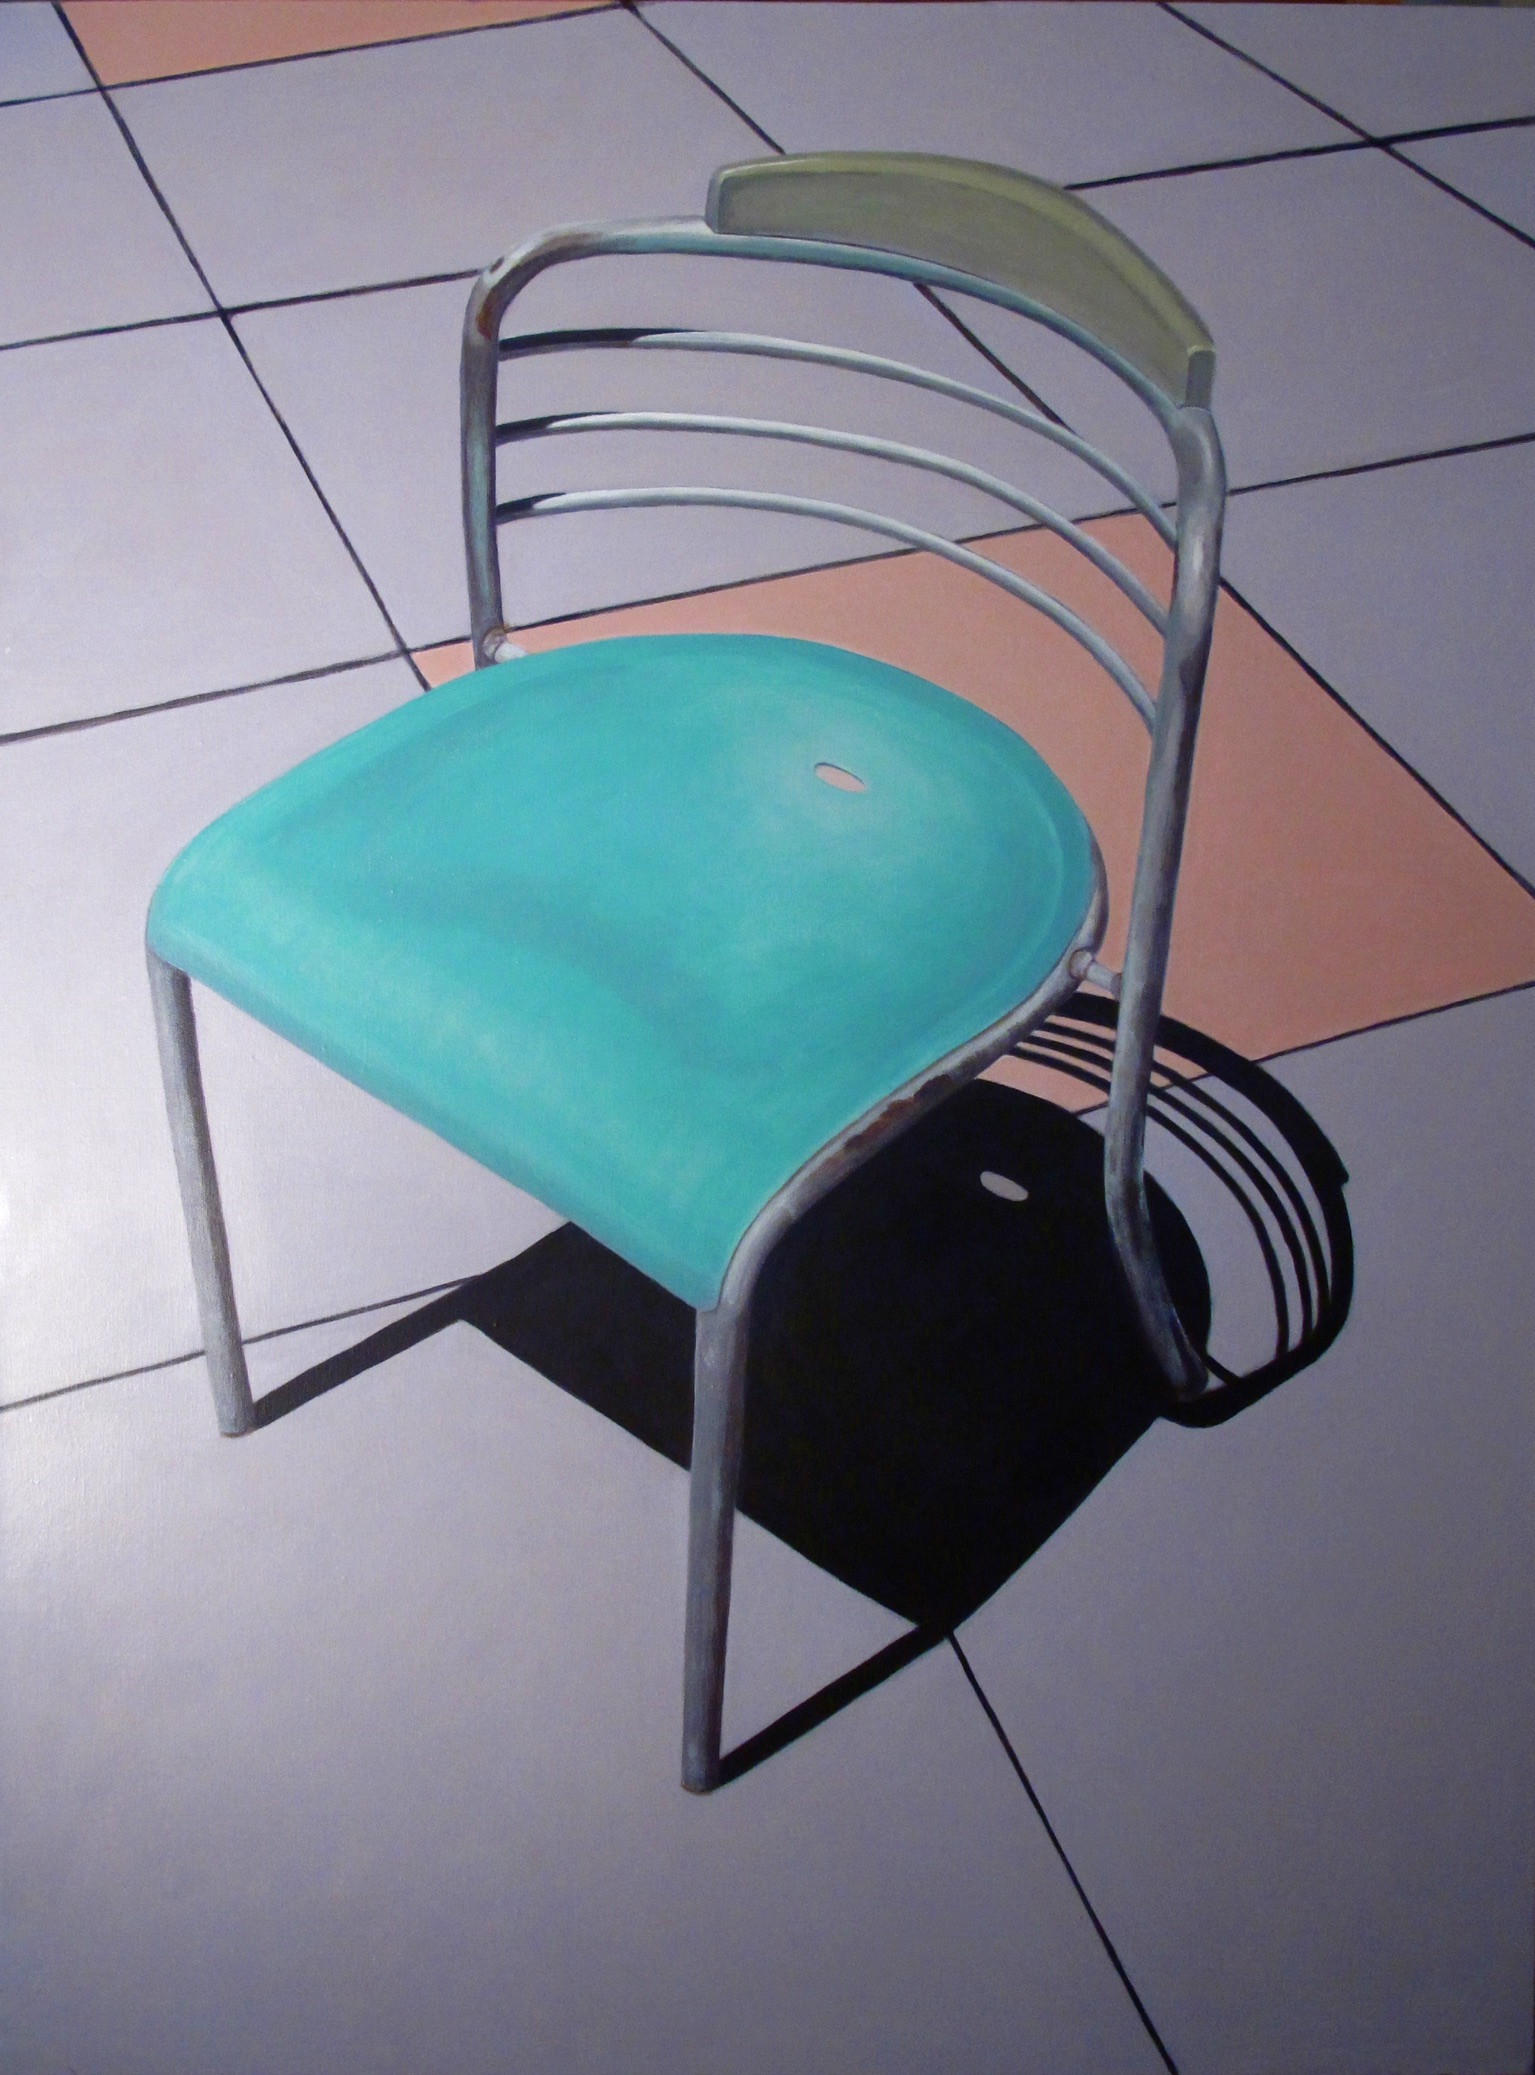 Union Square Chair, 2010, 30 x 40, acrylic on canvas